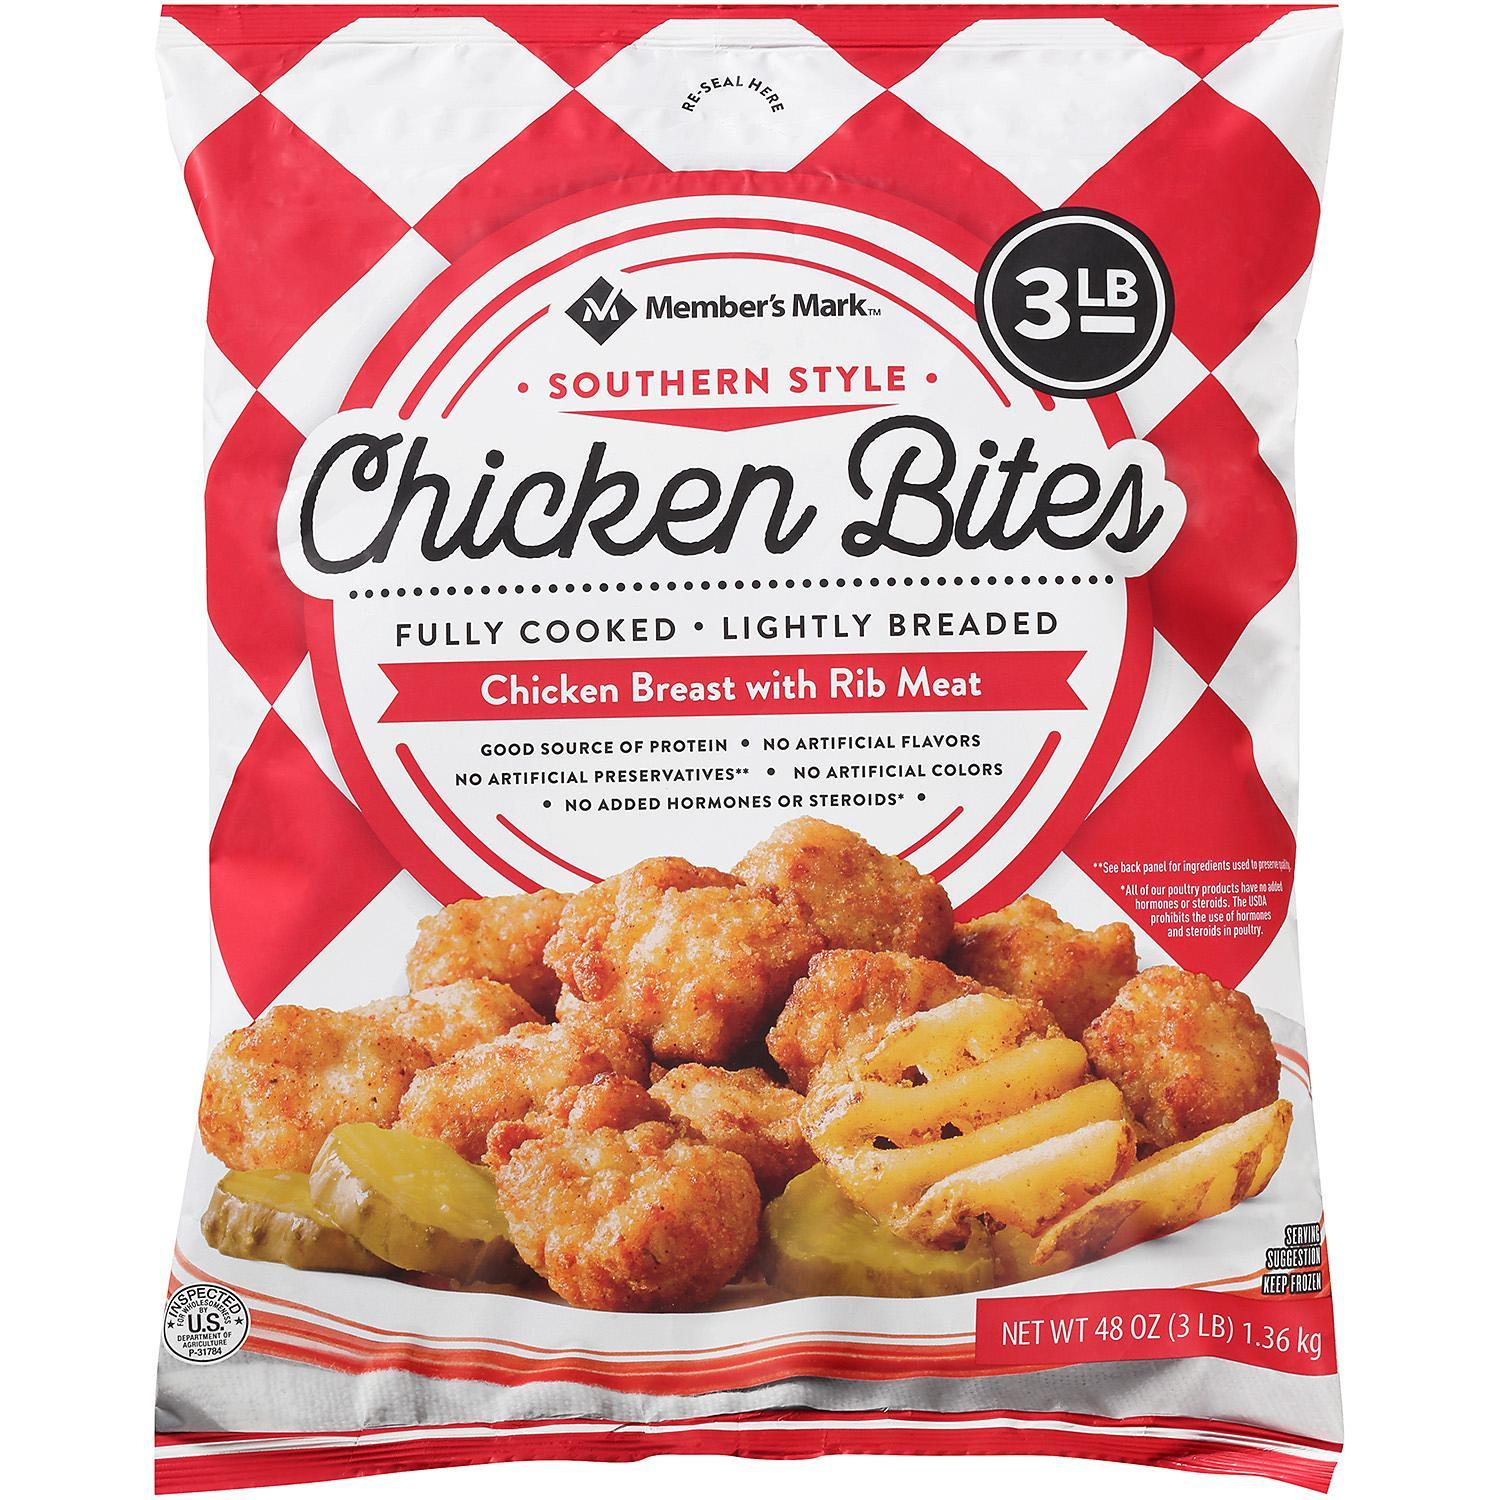 Southern Style Chicken Bites